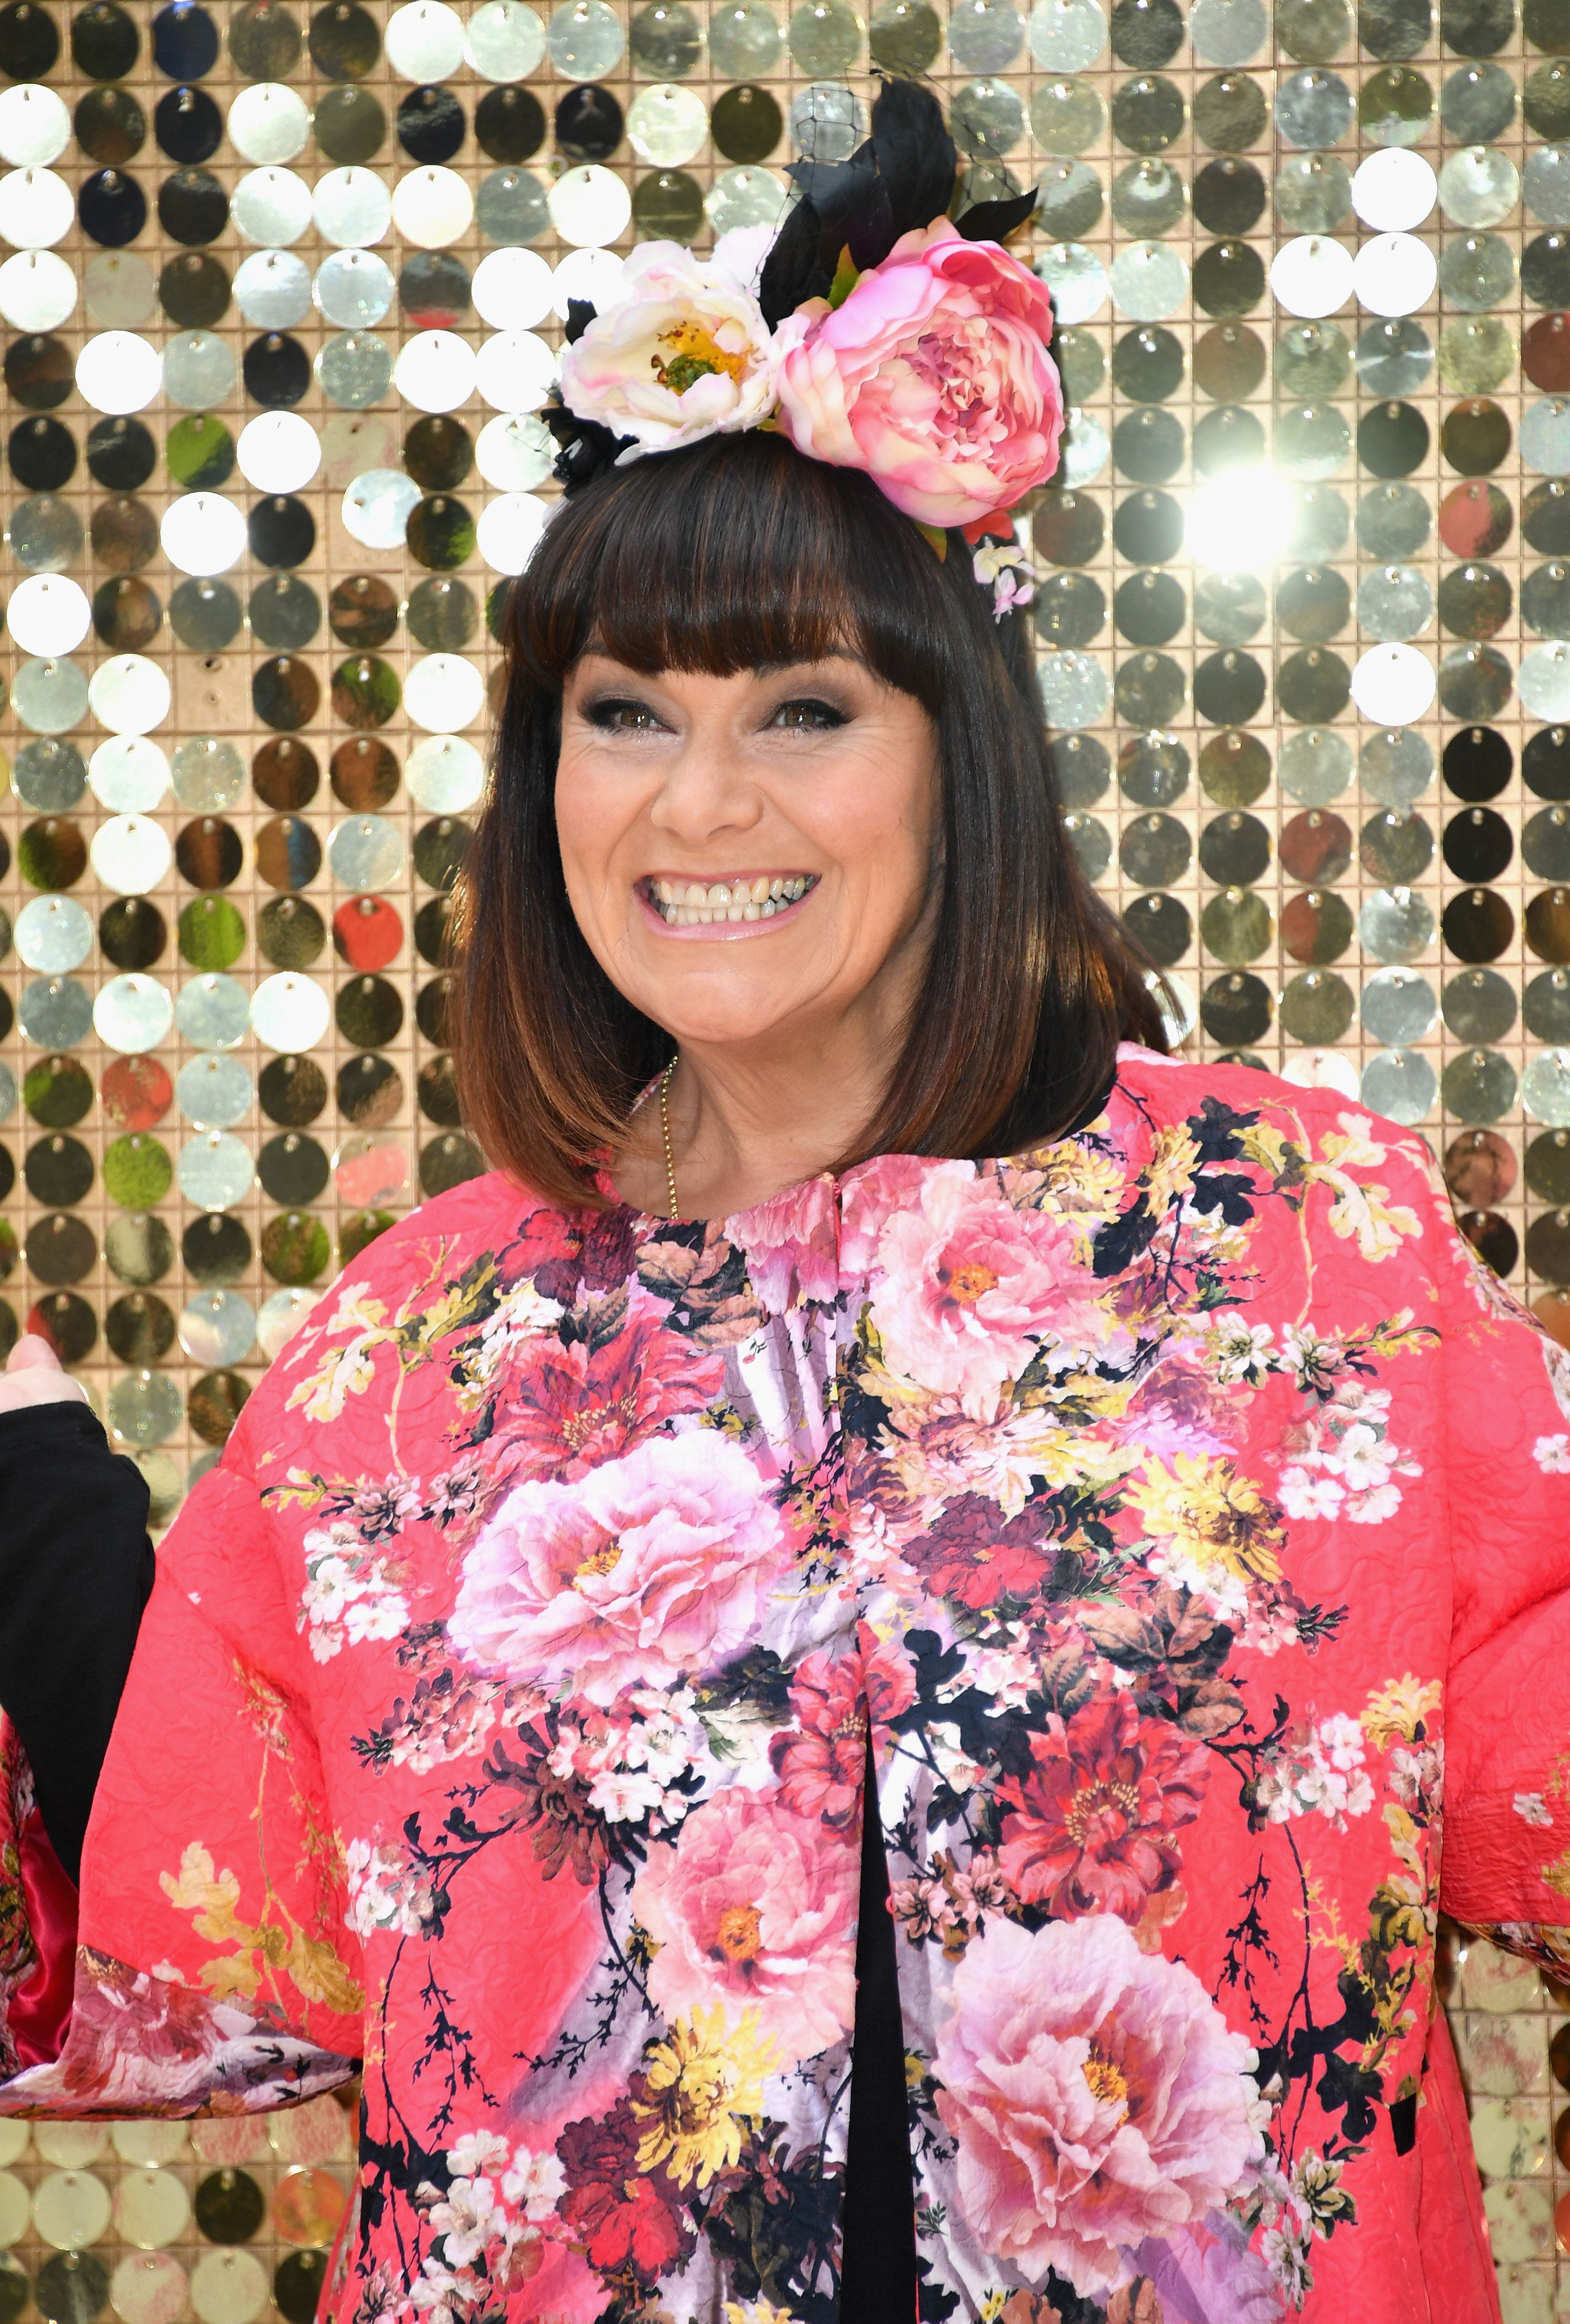 Dawn French Admits She Wants To Take Drugs As She Gets